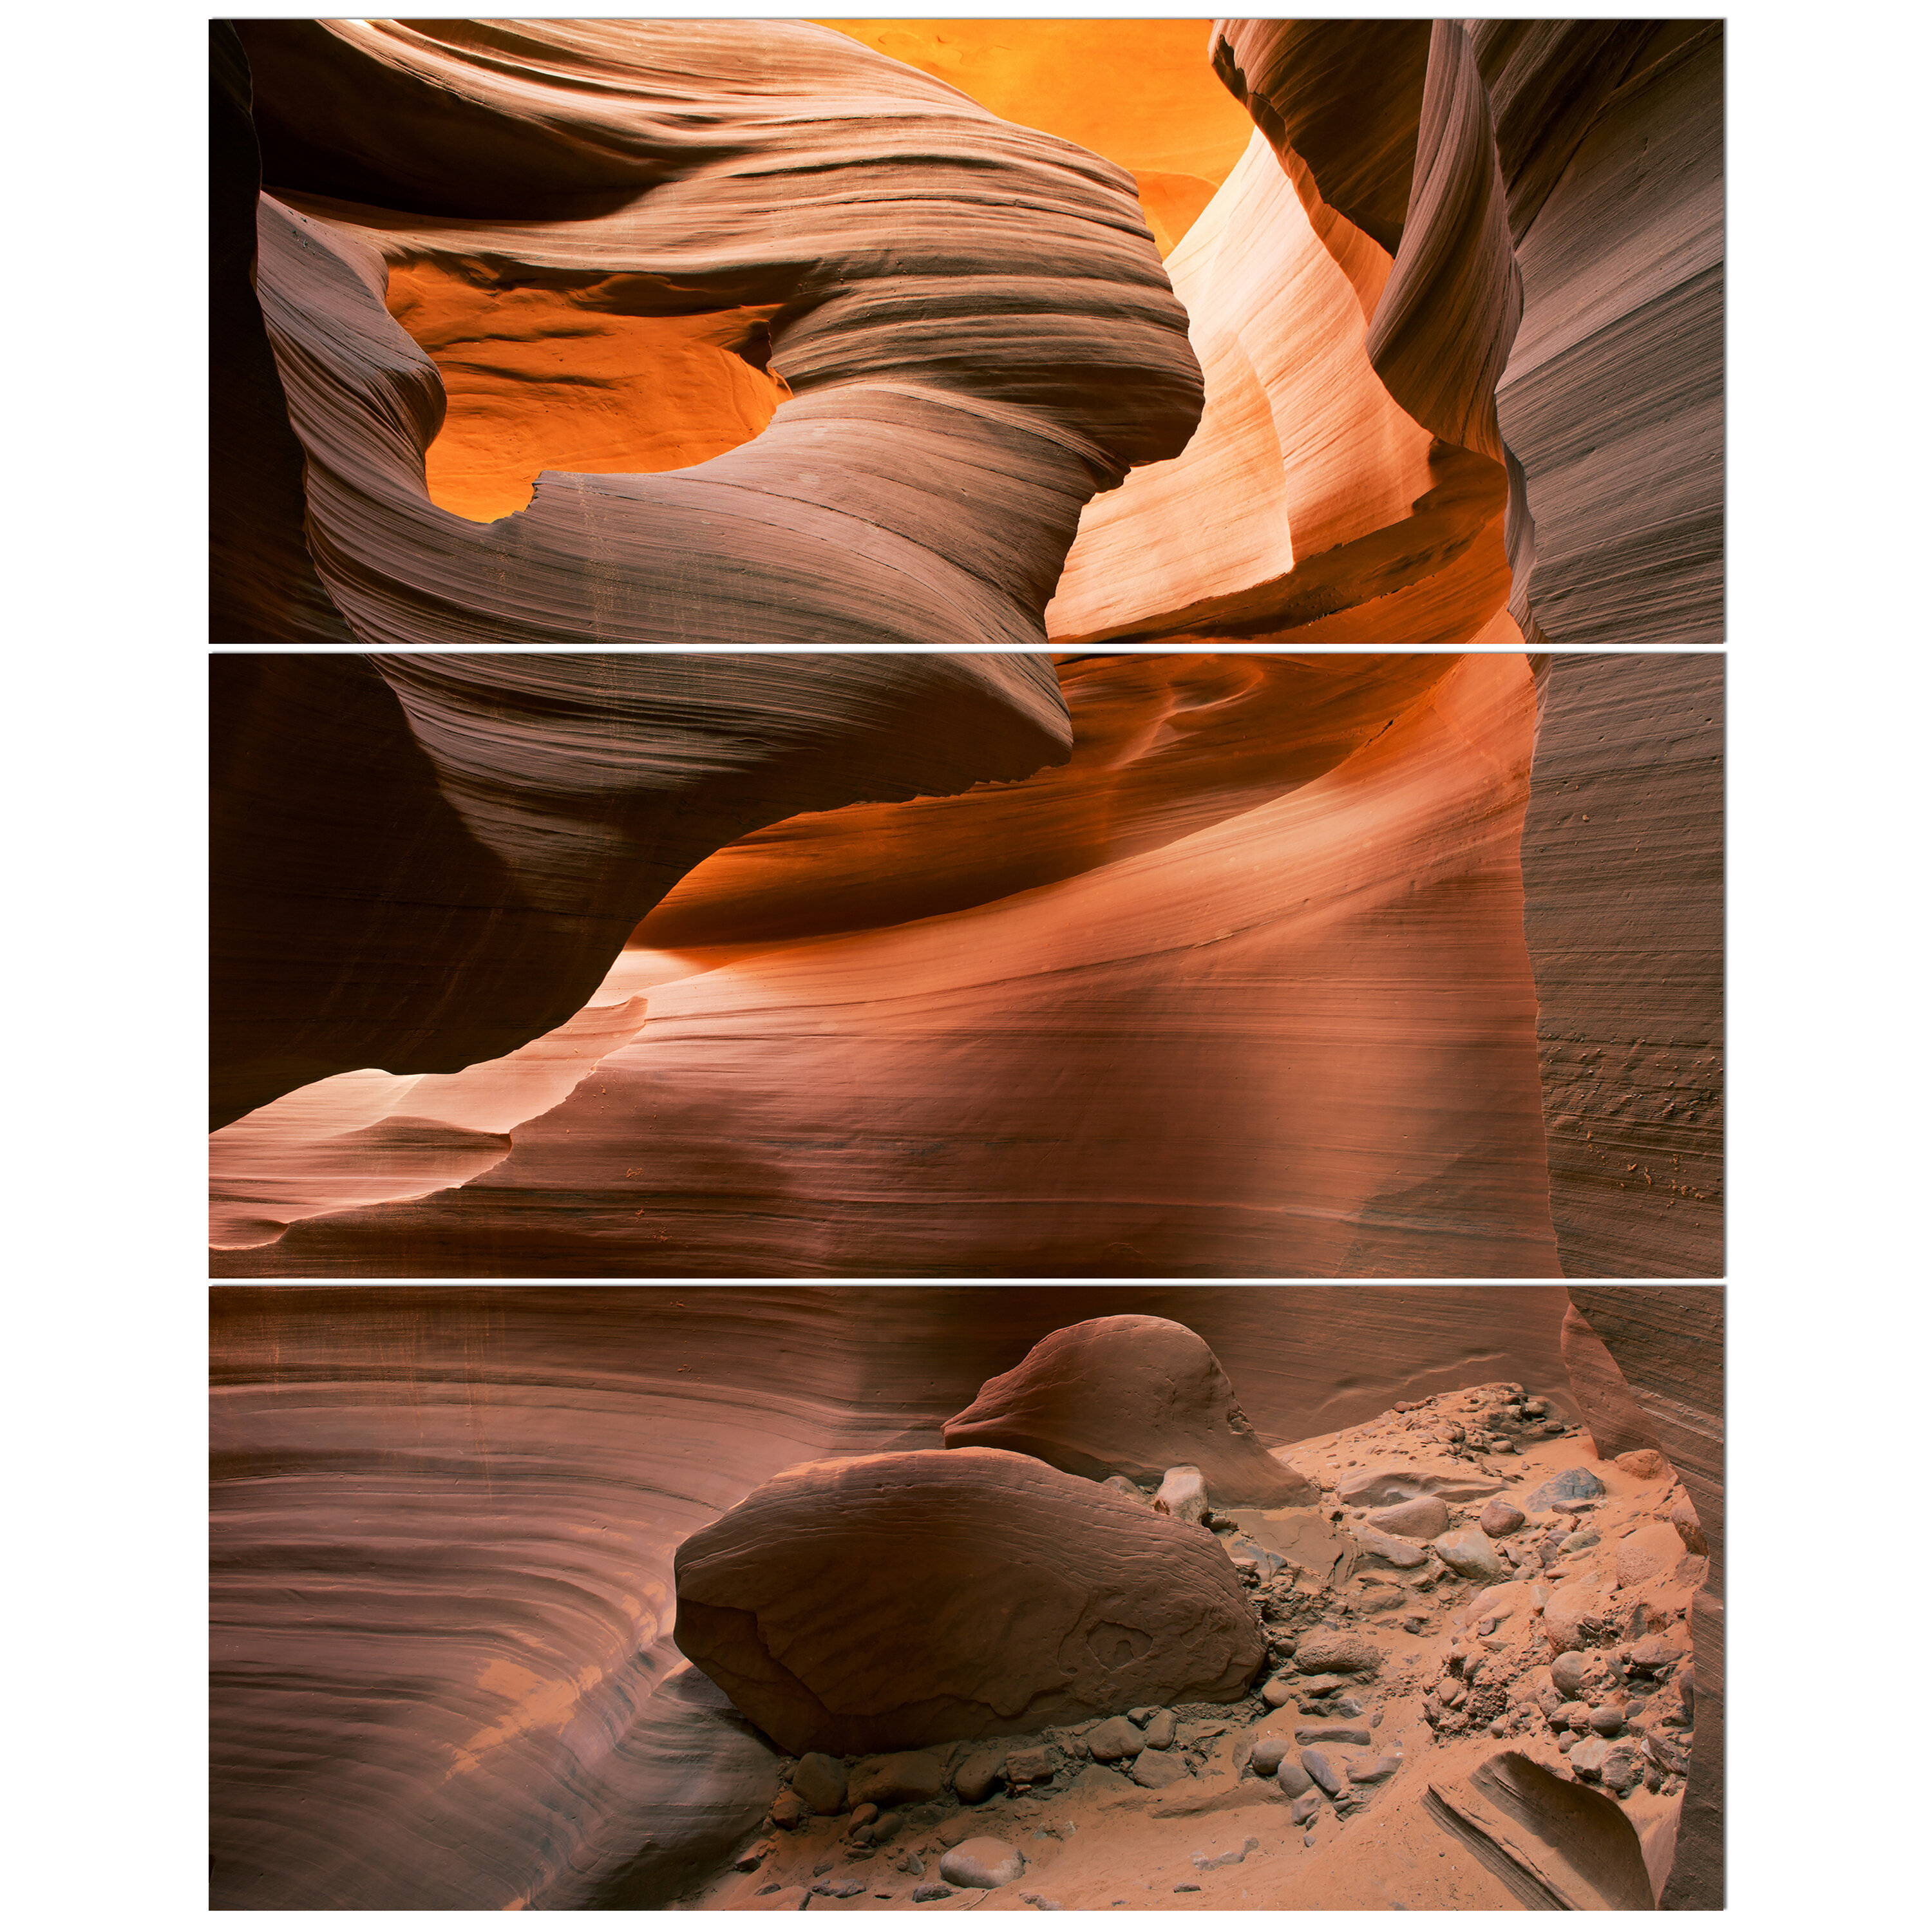 East Urban Home Lower Antelope Slot Canyon In Reflected Sunlight Photographic Print Multi Piece Image On Wrapped Canvas Wayfair